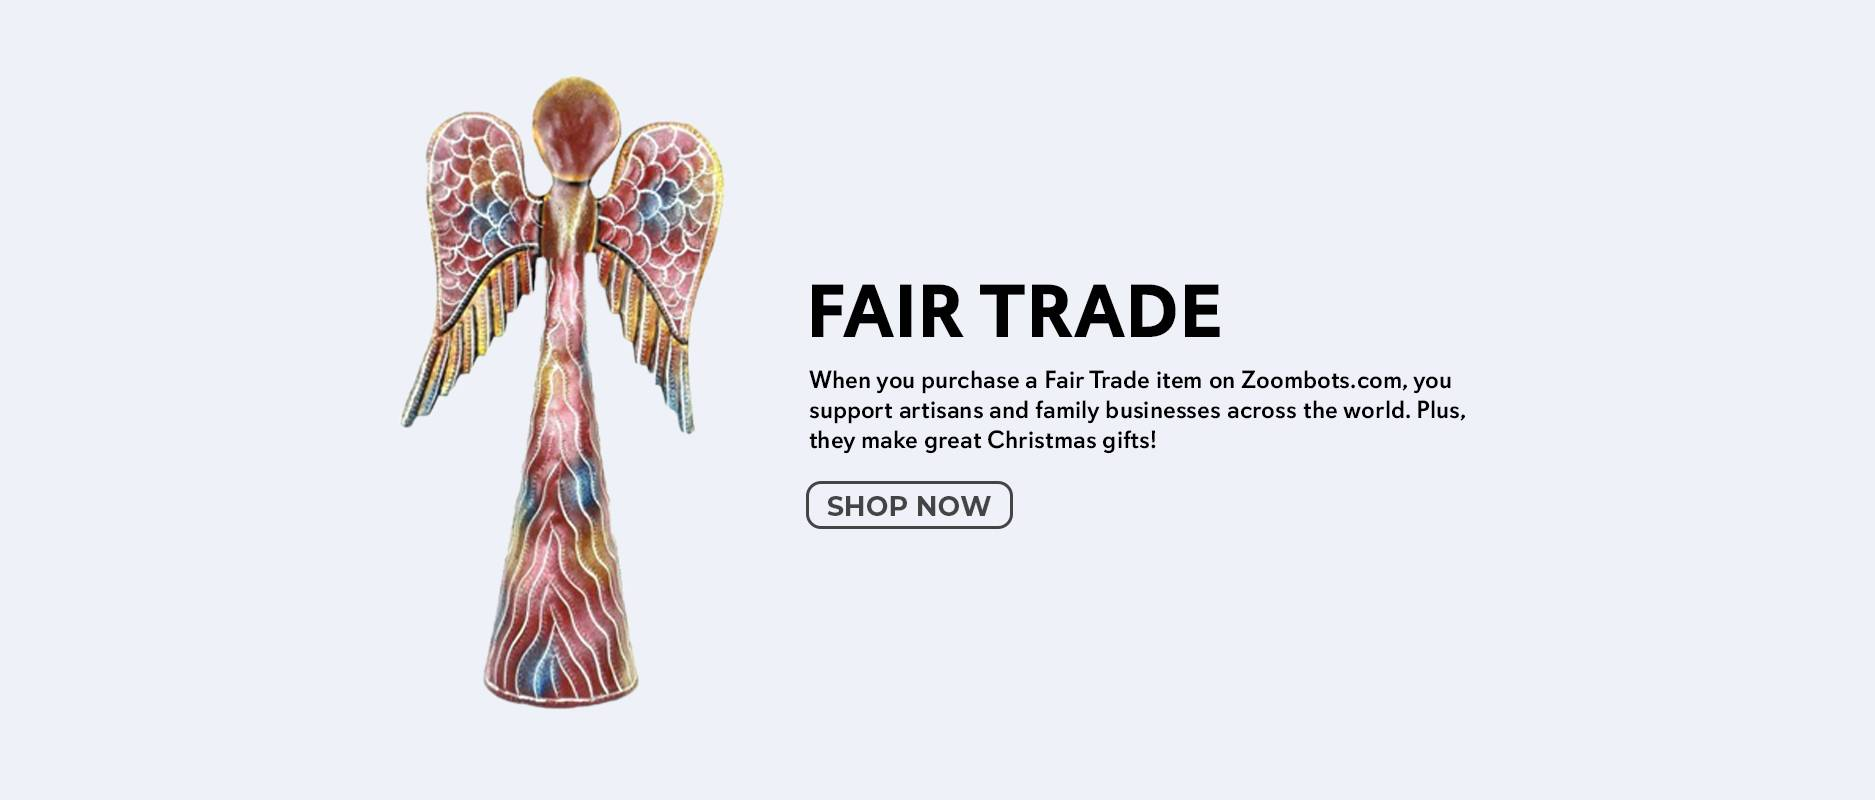 Shop Fair Trade on Zoombots.com